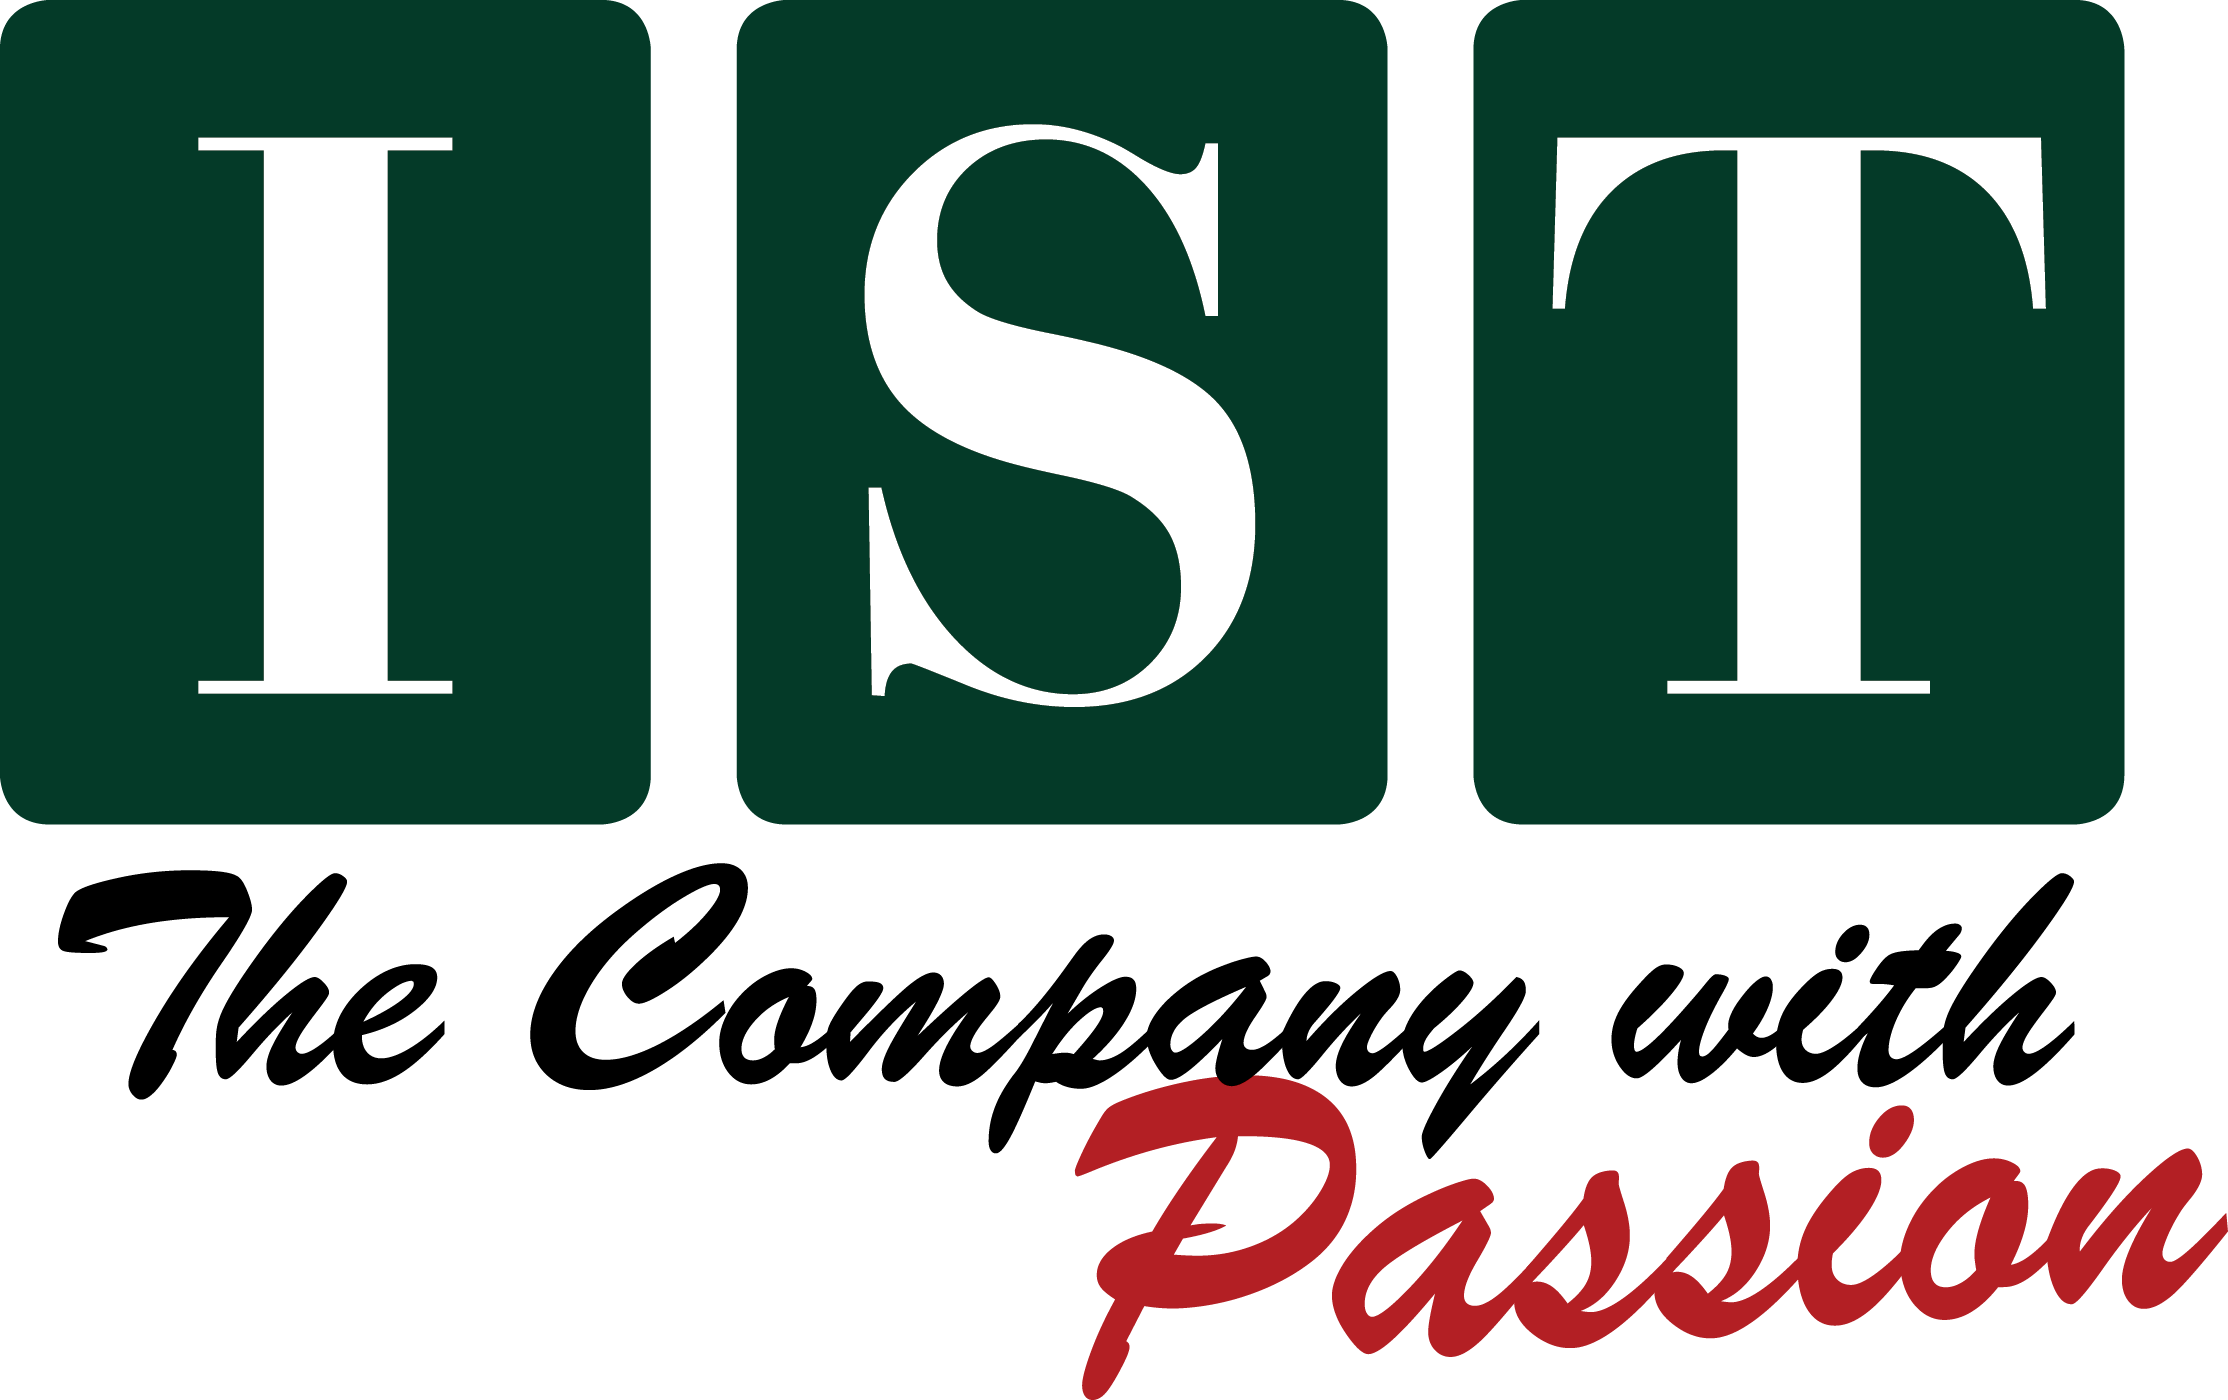 IST Management Services, Inc. Company Logo